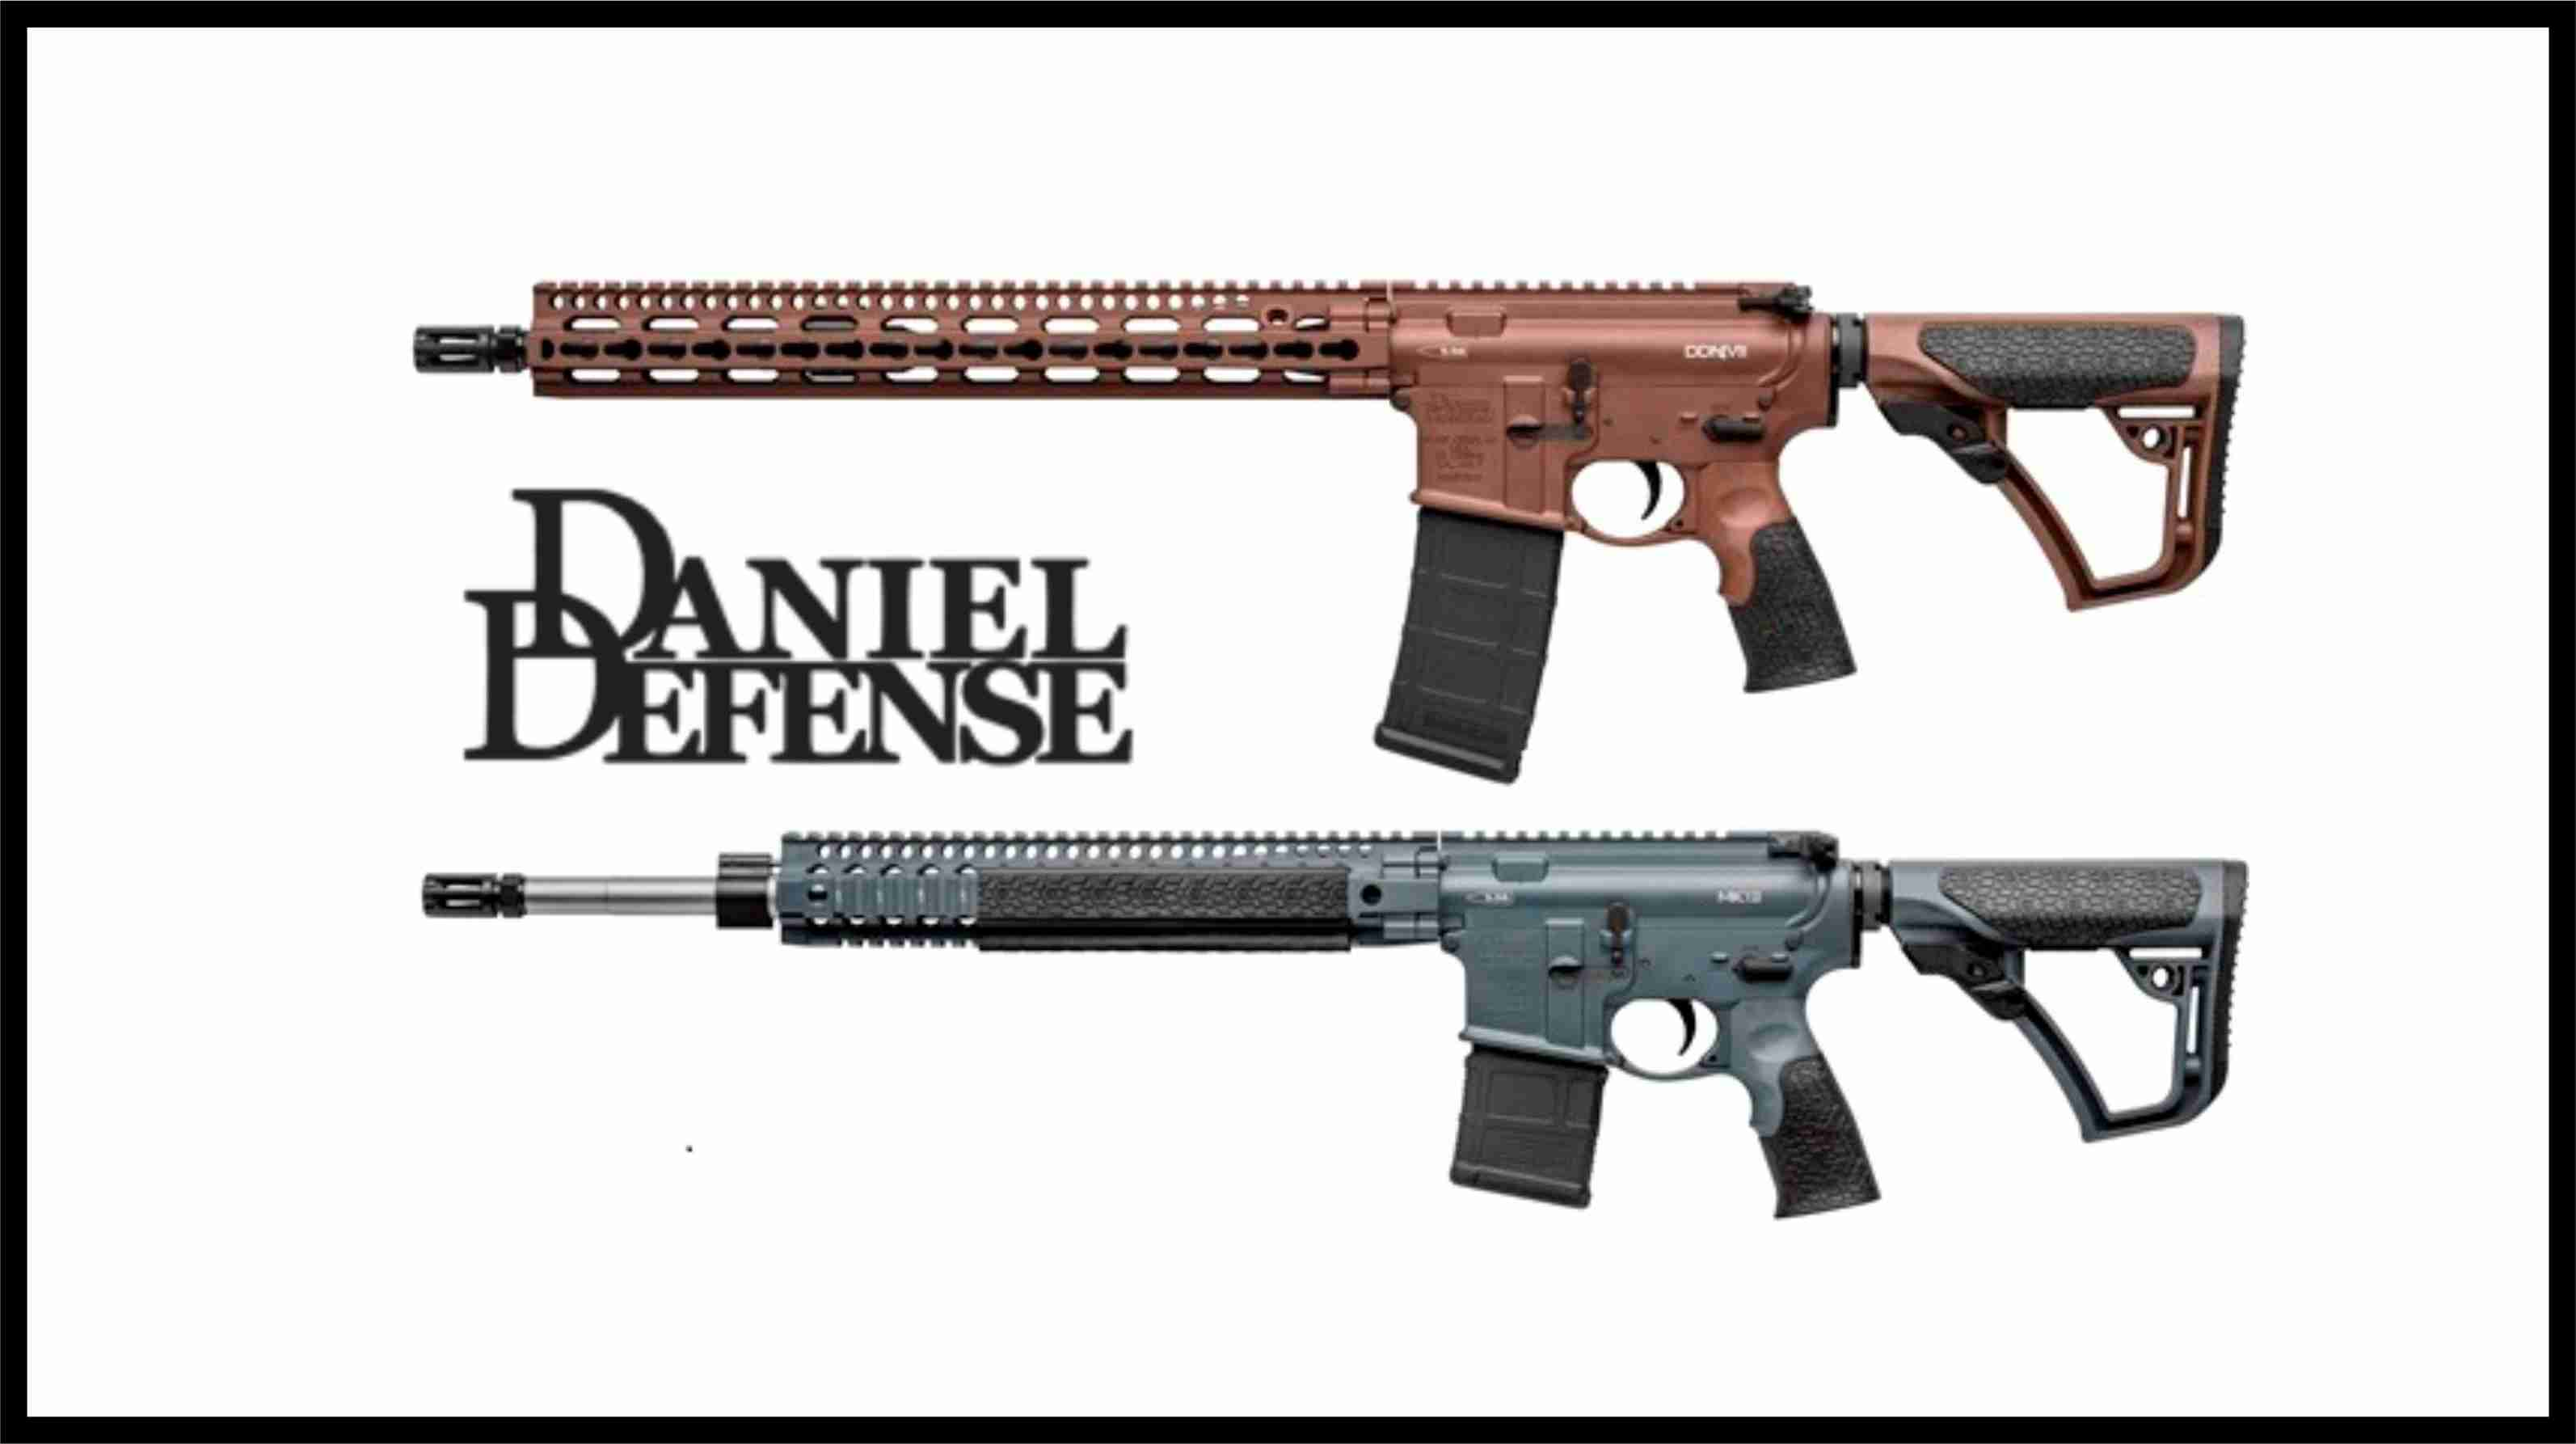 DANIEL DEFENSE AR RIFLES